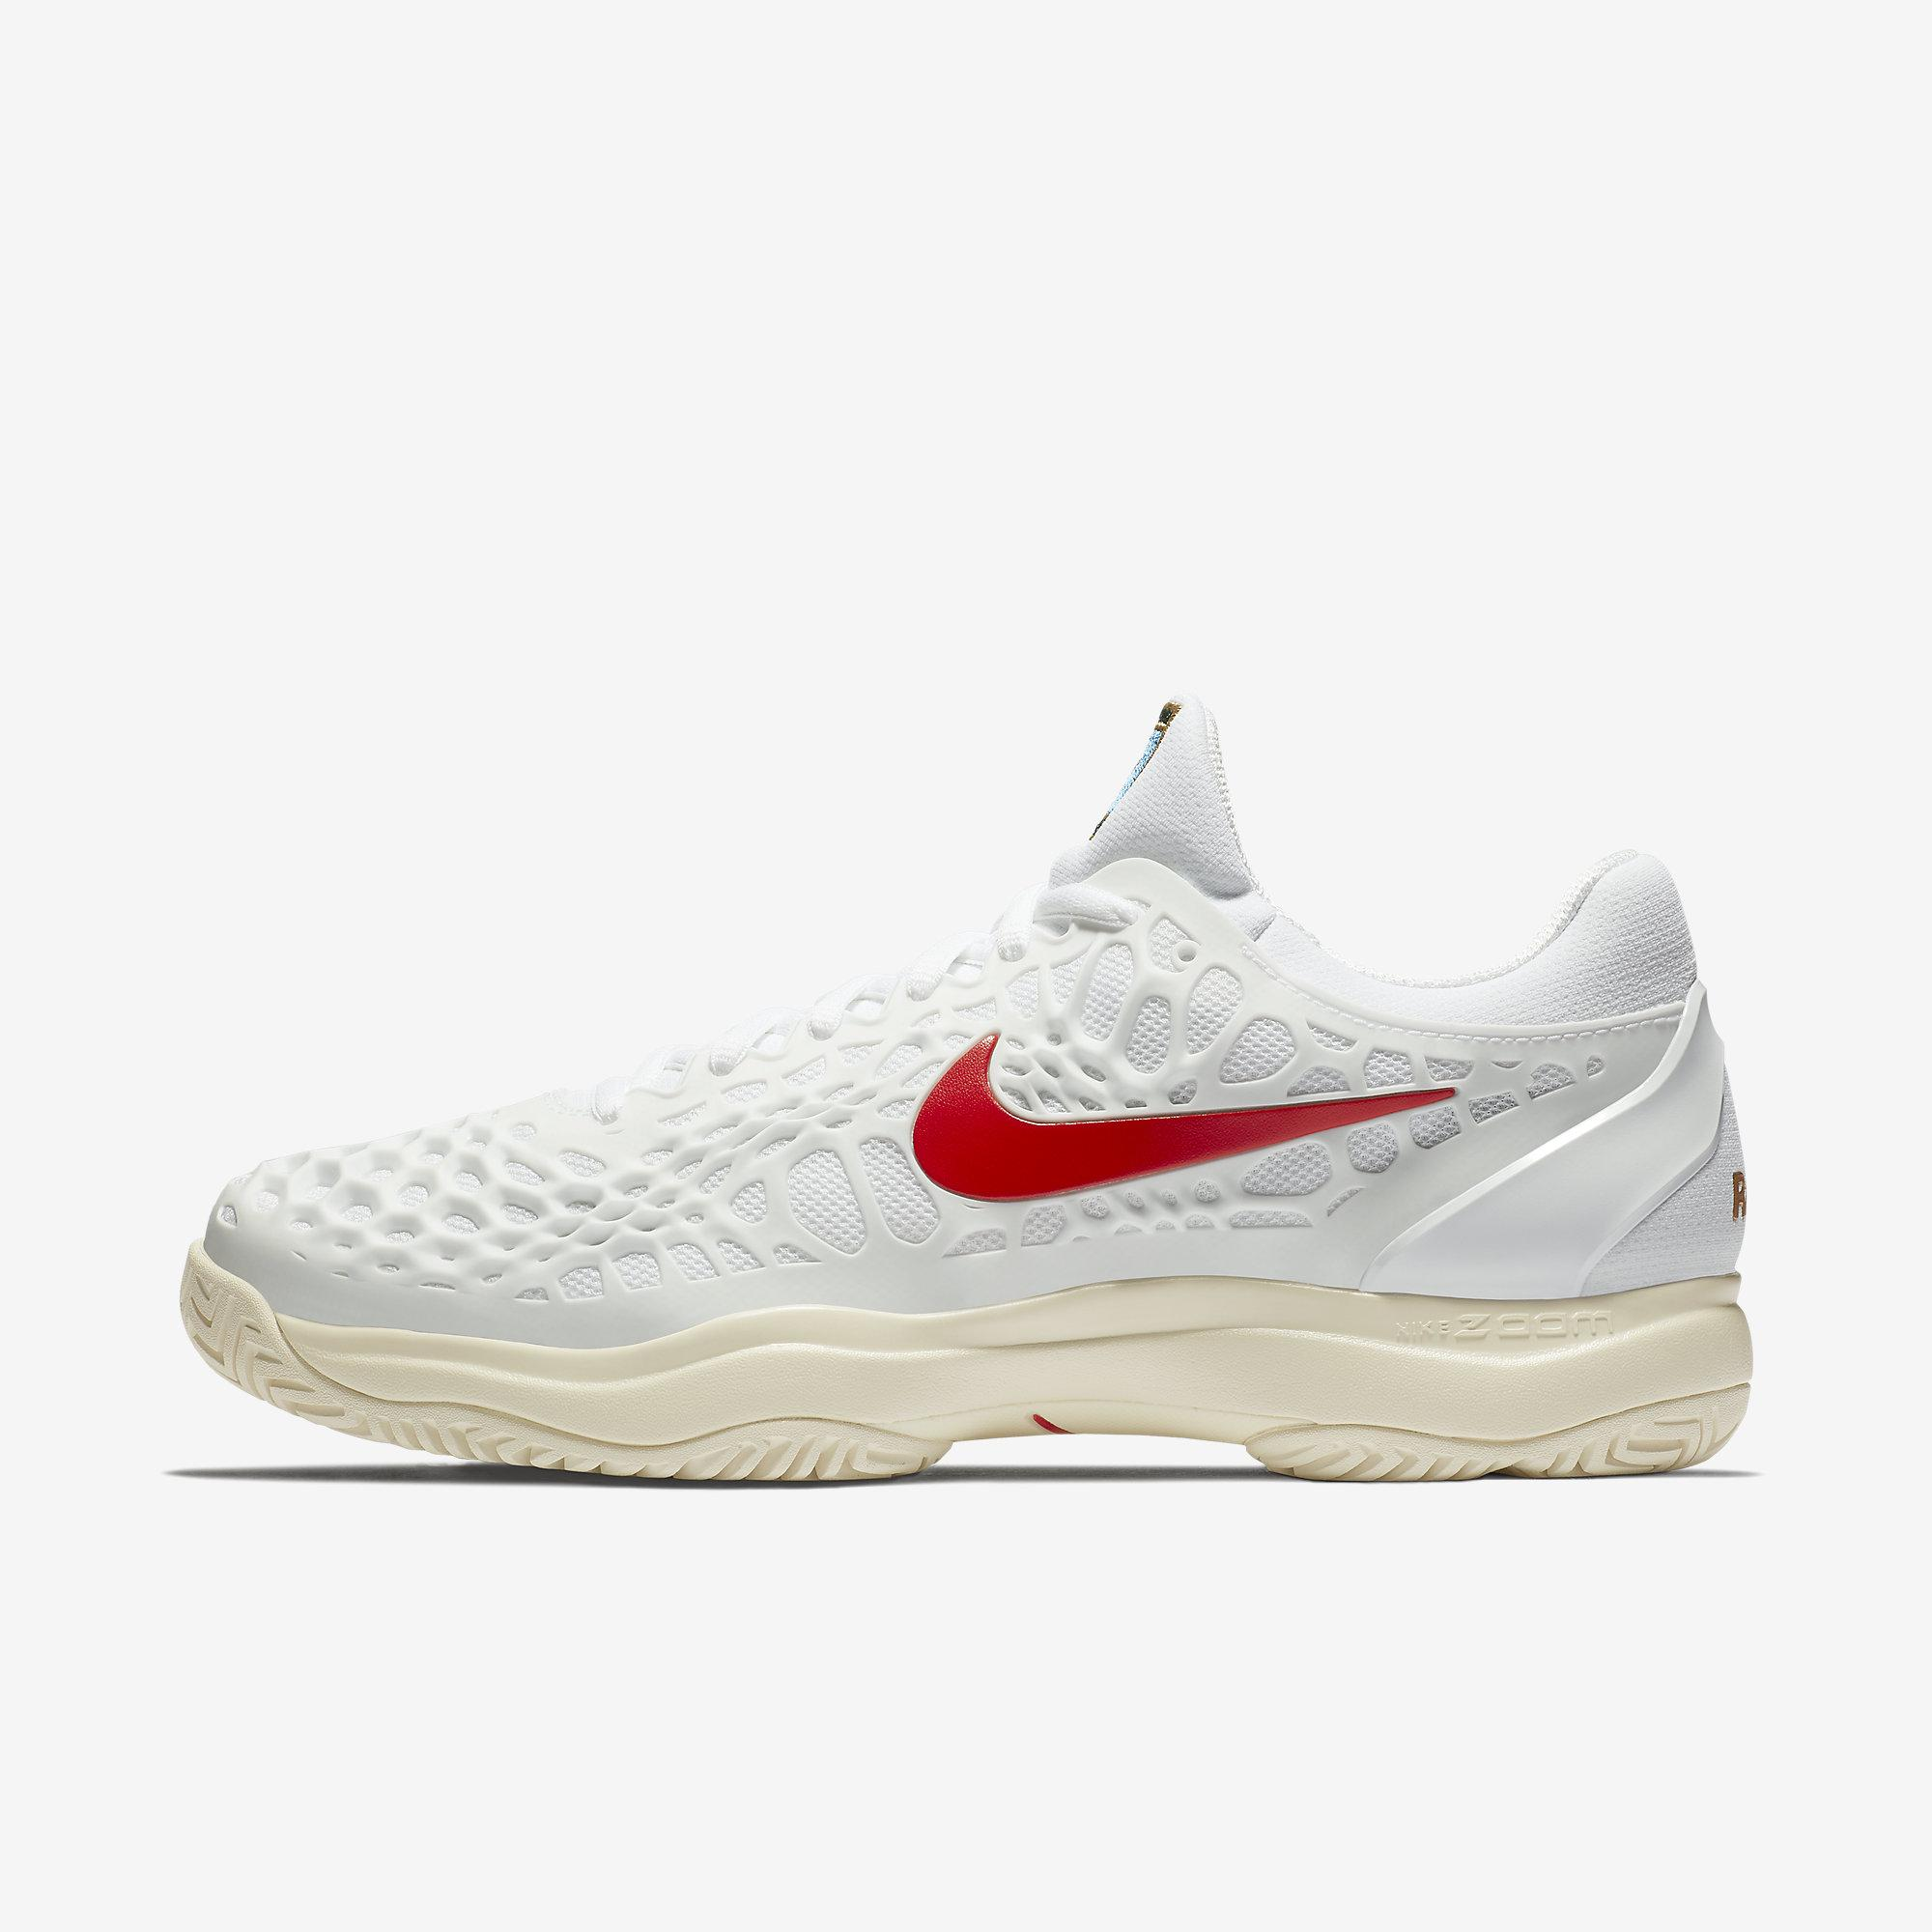 Nike Mens Zoom Cage 3 Rafa Tennis Shoes - White Light Cream Red -  Tennisnuts.com b7ae55a97e5f